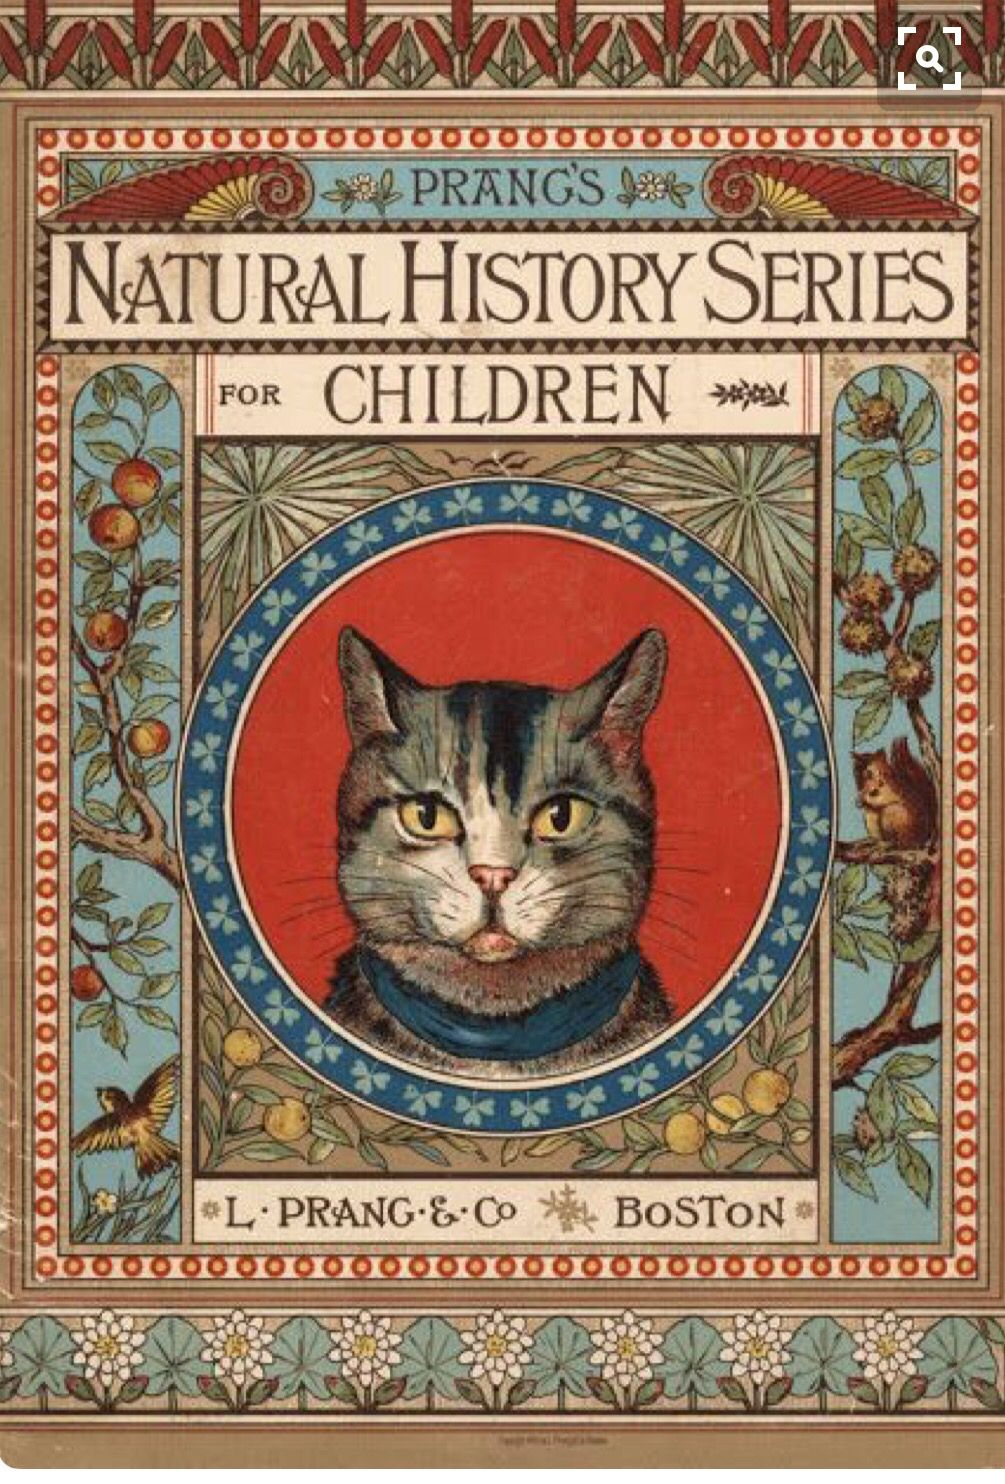 Antique book with Kitty